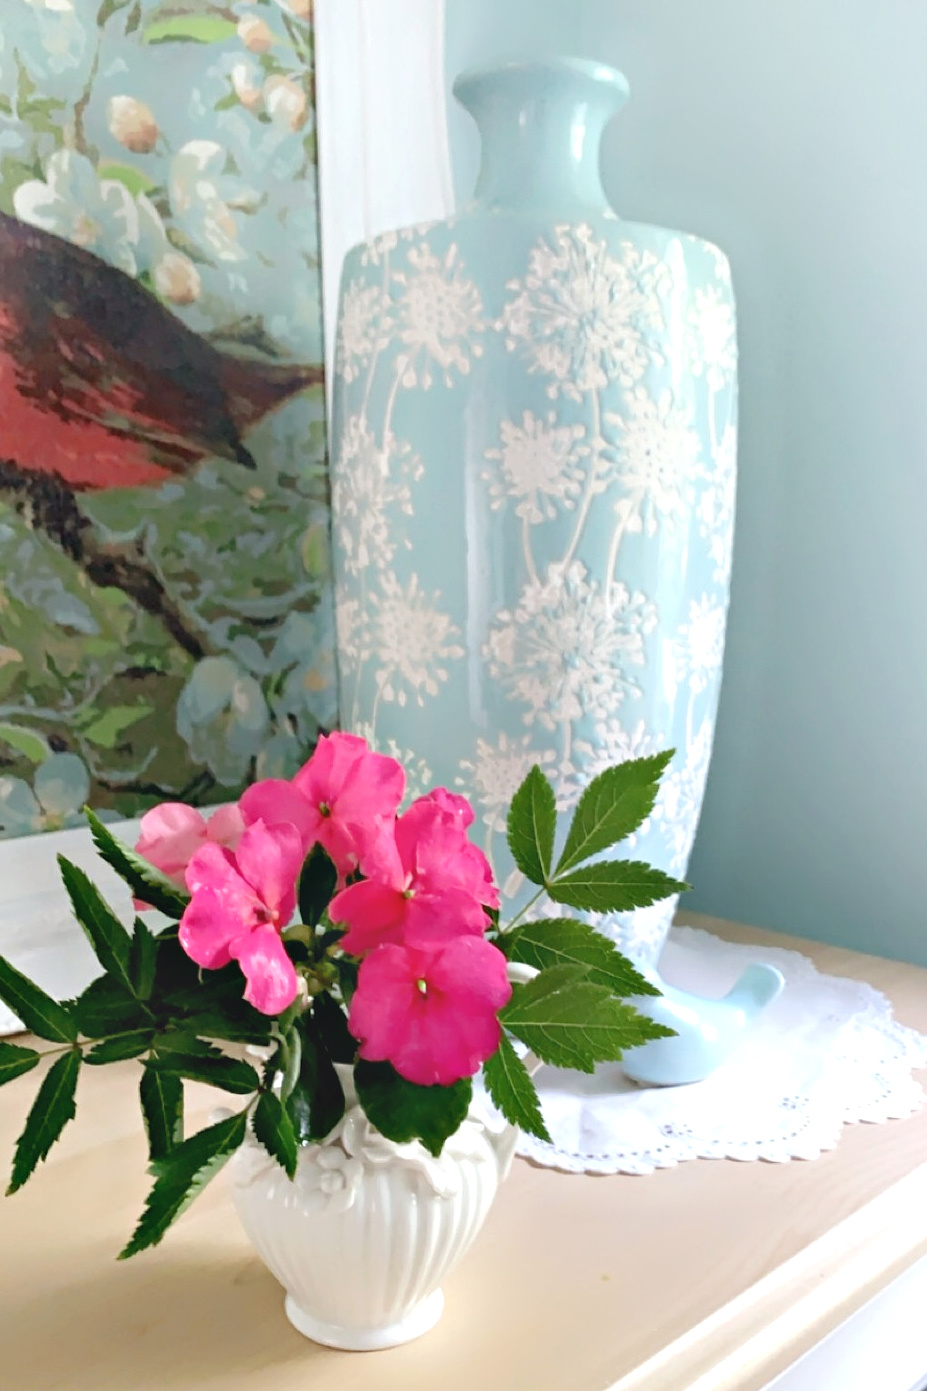 Impatiens gathered after the rain are displayed in a tiny vase to brighten the powder room.